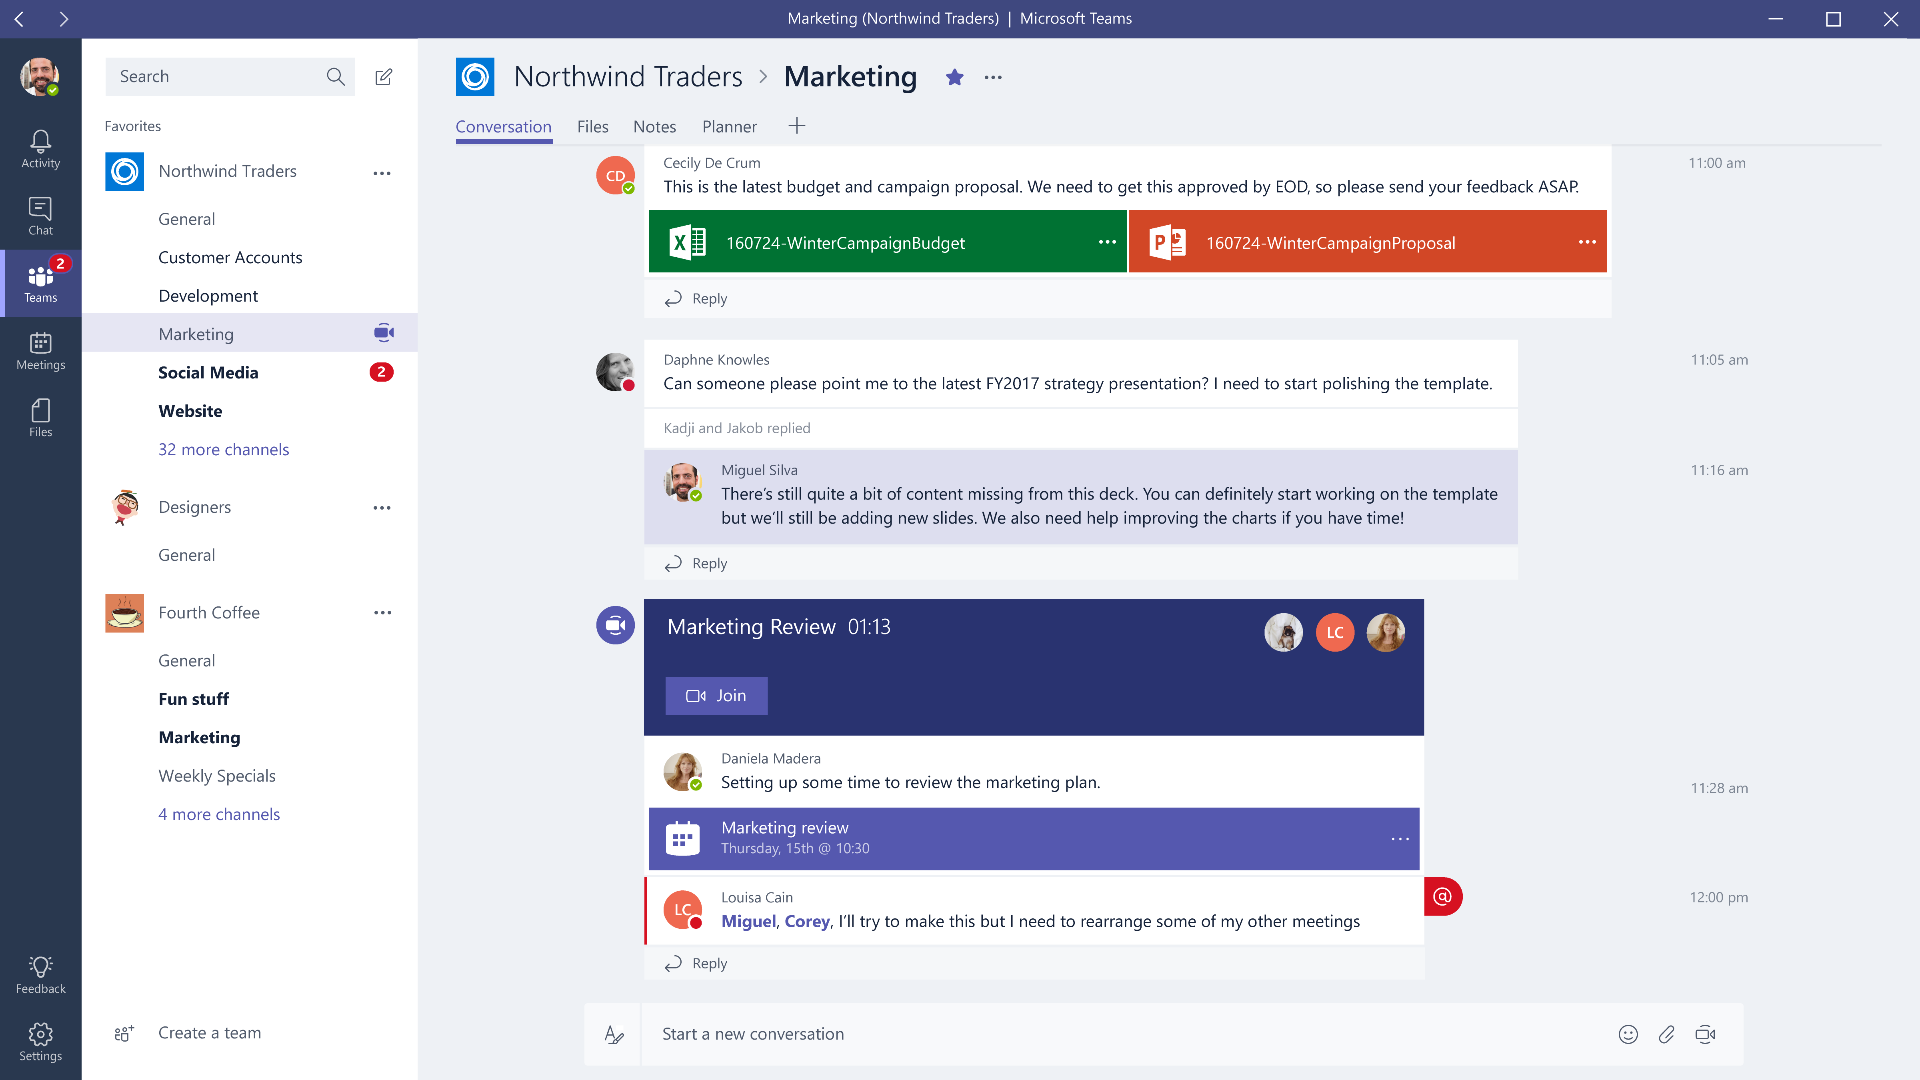 Microsoft Teams: A Beginners Guide to Teams | Office 365